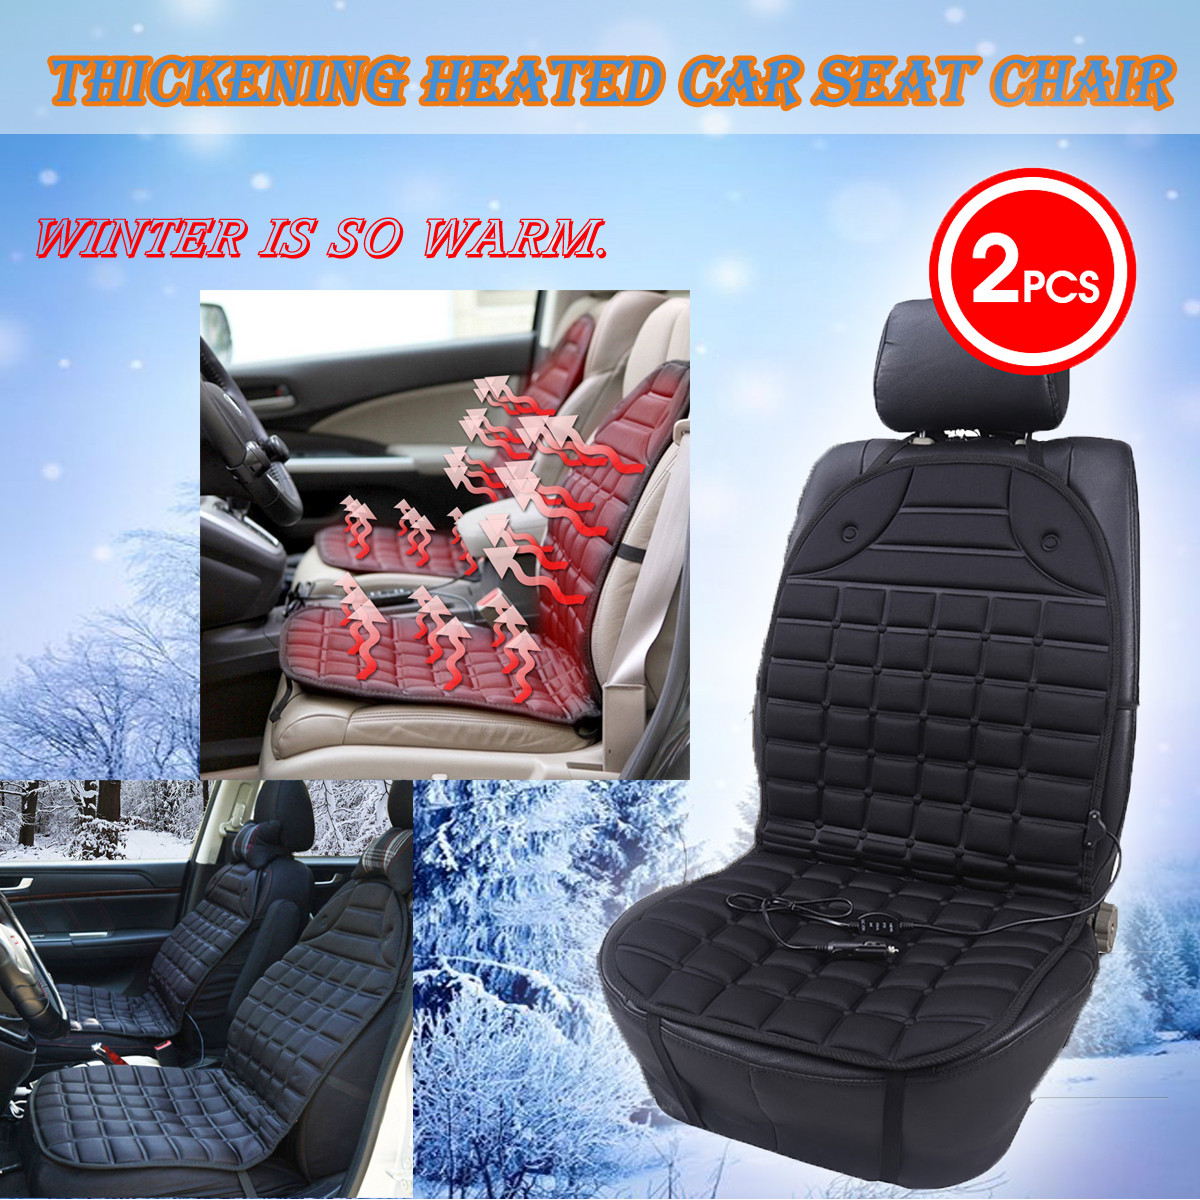 2Pcs Auto 12V Universal Electric Car Heated Seat Cushion Cover Heating Warmer Massage Seat Pad For Winter Car Conjoined Supplies 12v electric car heated seat cushion cover auto heating heater warmer pad winter car seat cover supplies hight quality